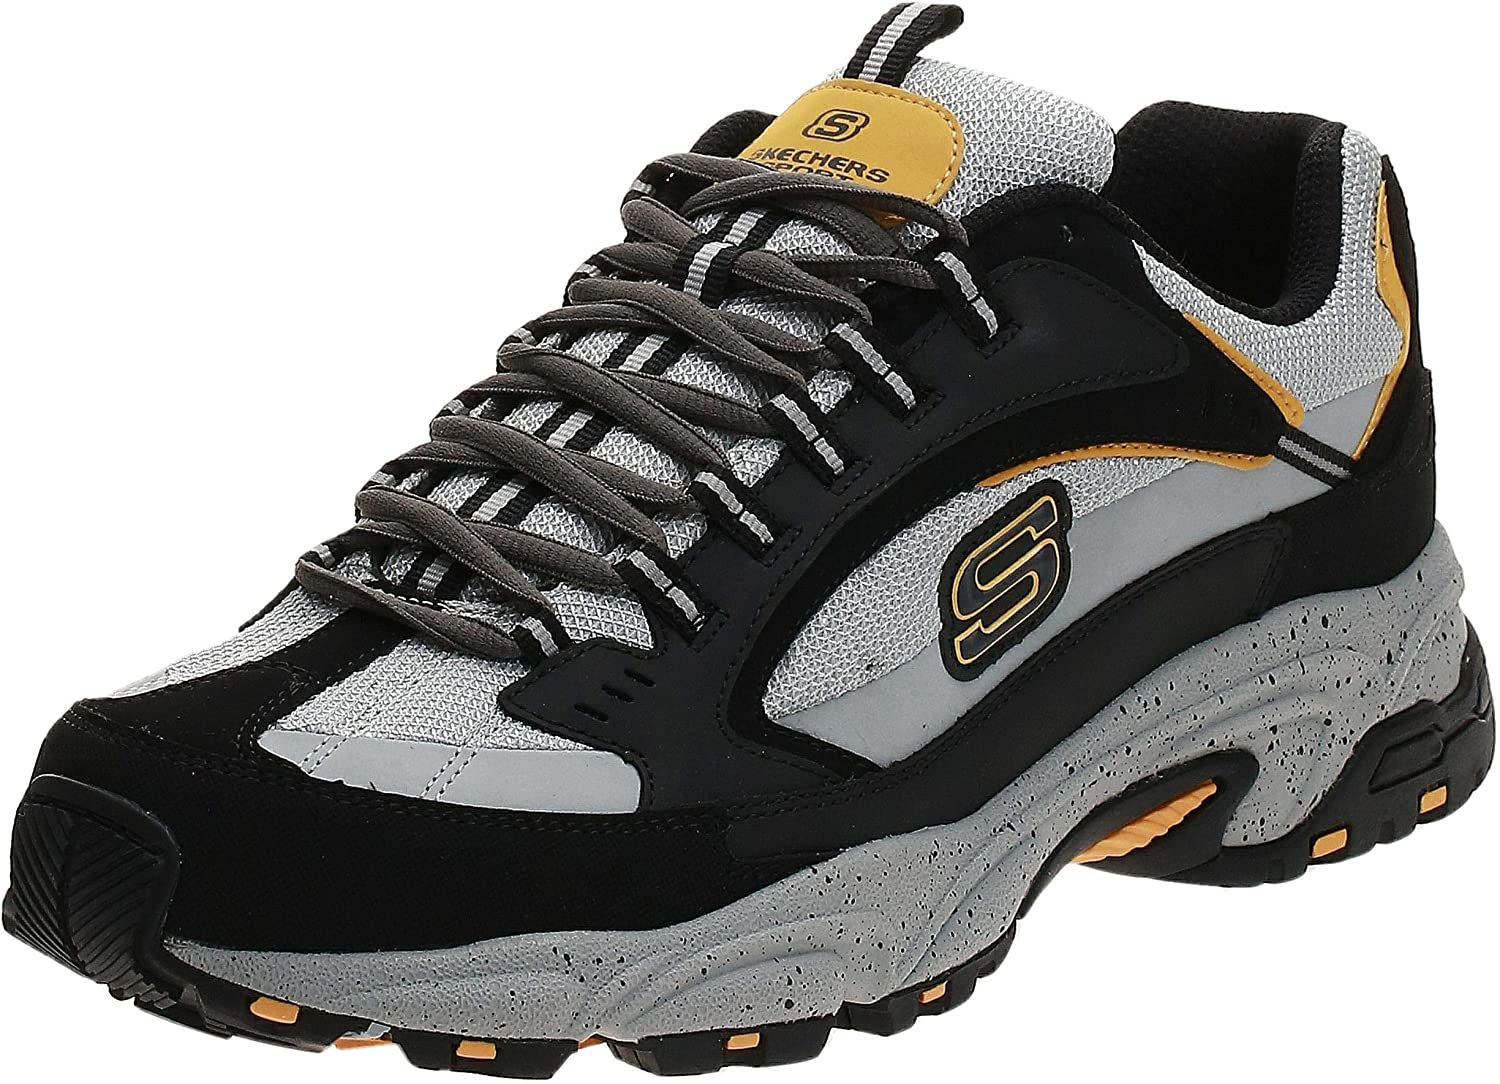 Skechers Men's Stamina Complete Free Shipping Trainers Virginia Beach Mall Cutback